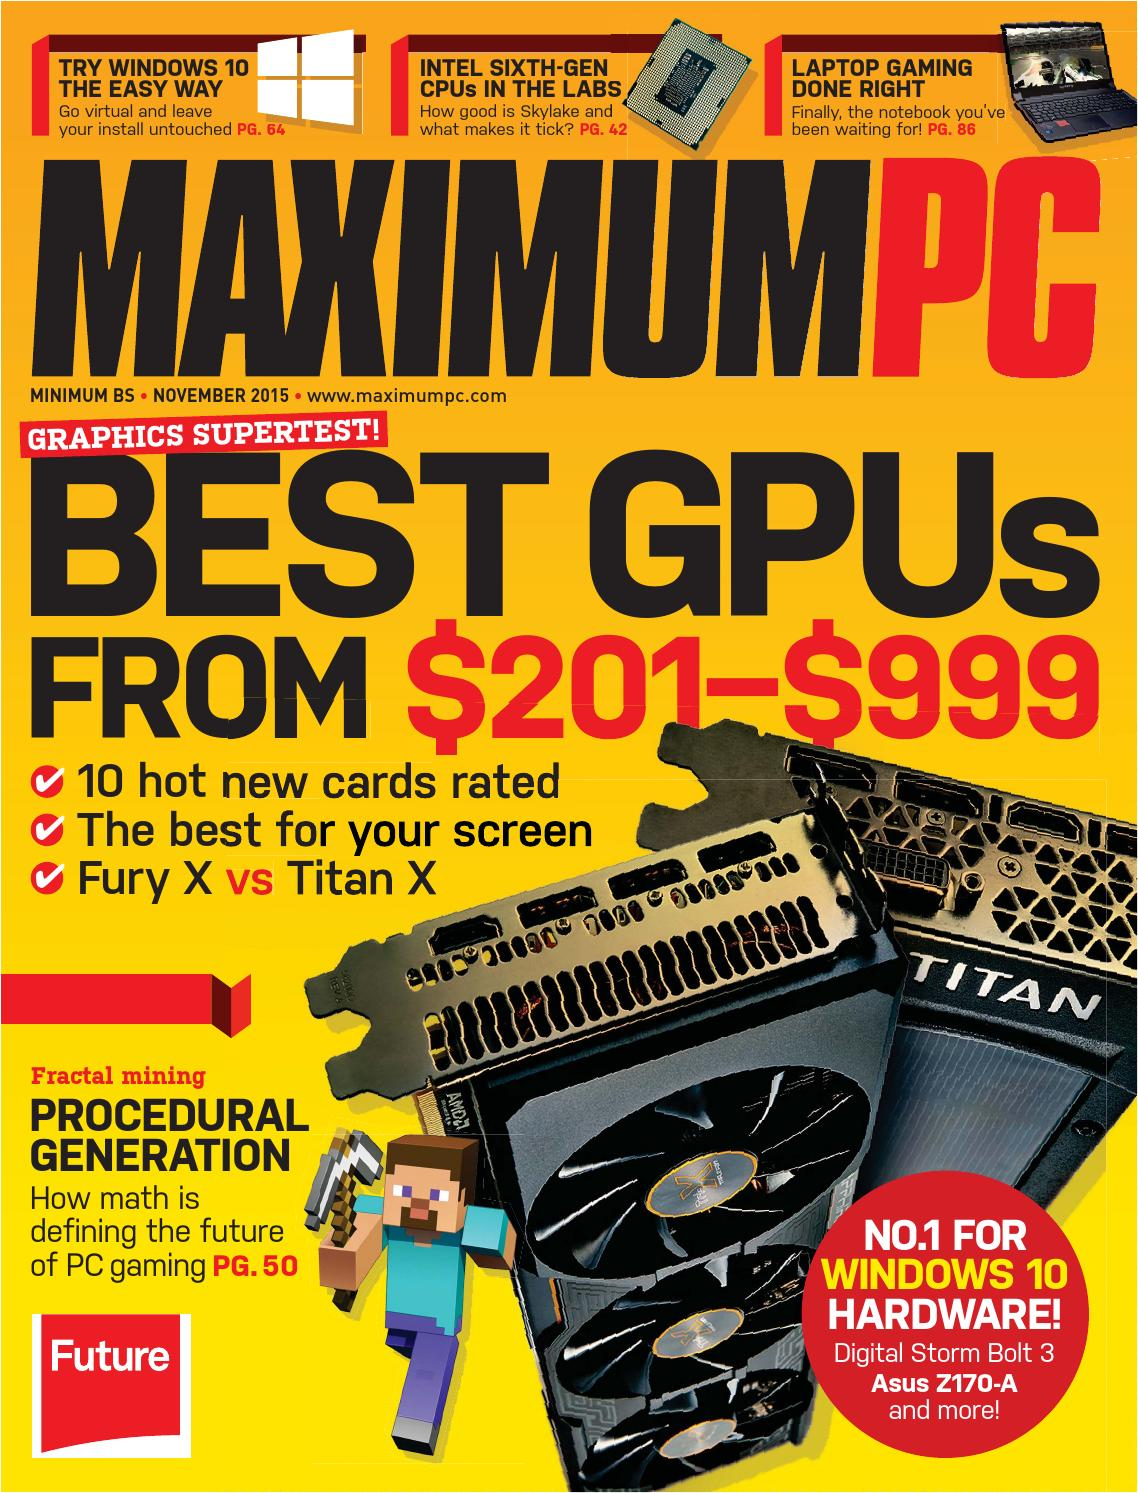 Nthgw4gmaximum Pc November 2015 By Voodersaxc Issuu Download Image Led Strobe Circuit Needs More Current Android